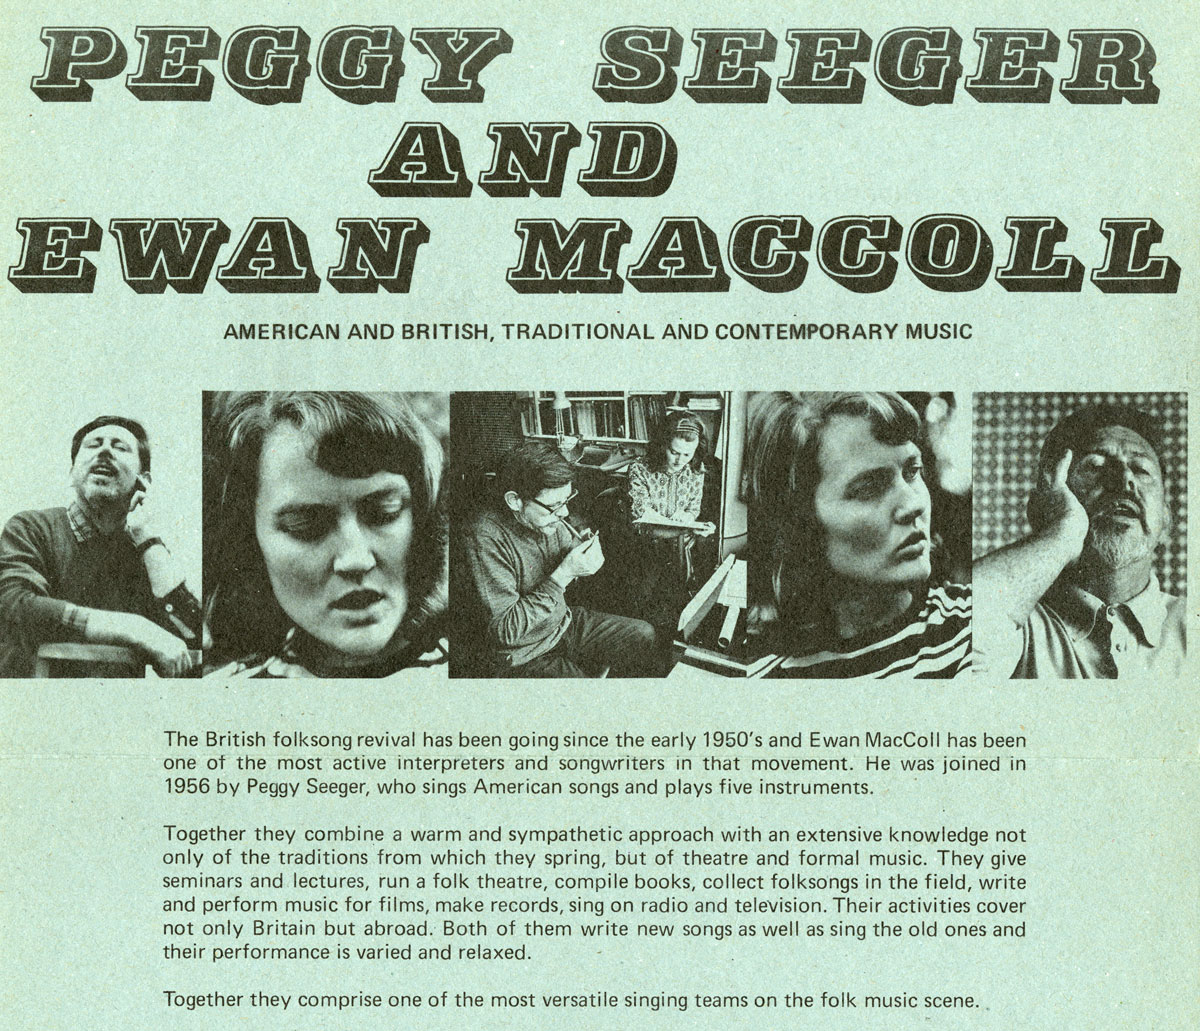 Selection from promotional leaflet about Peggy Seeger and Ewan MacColl.